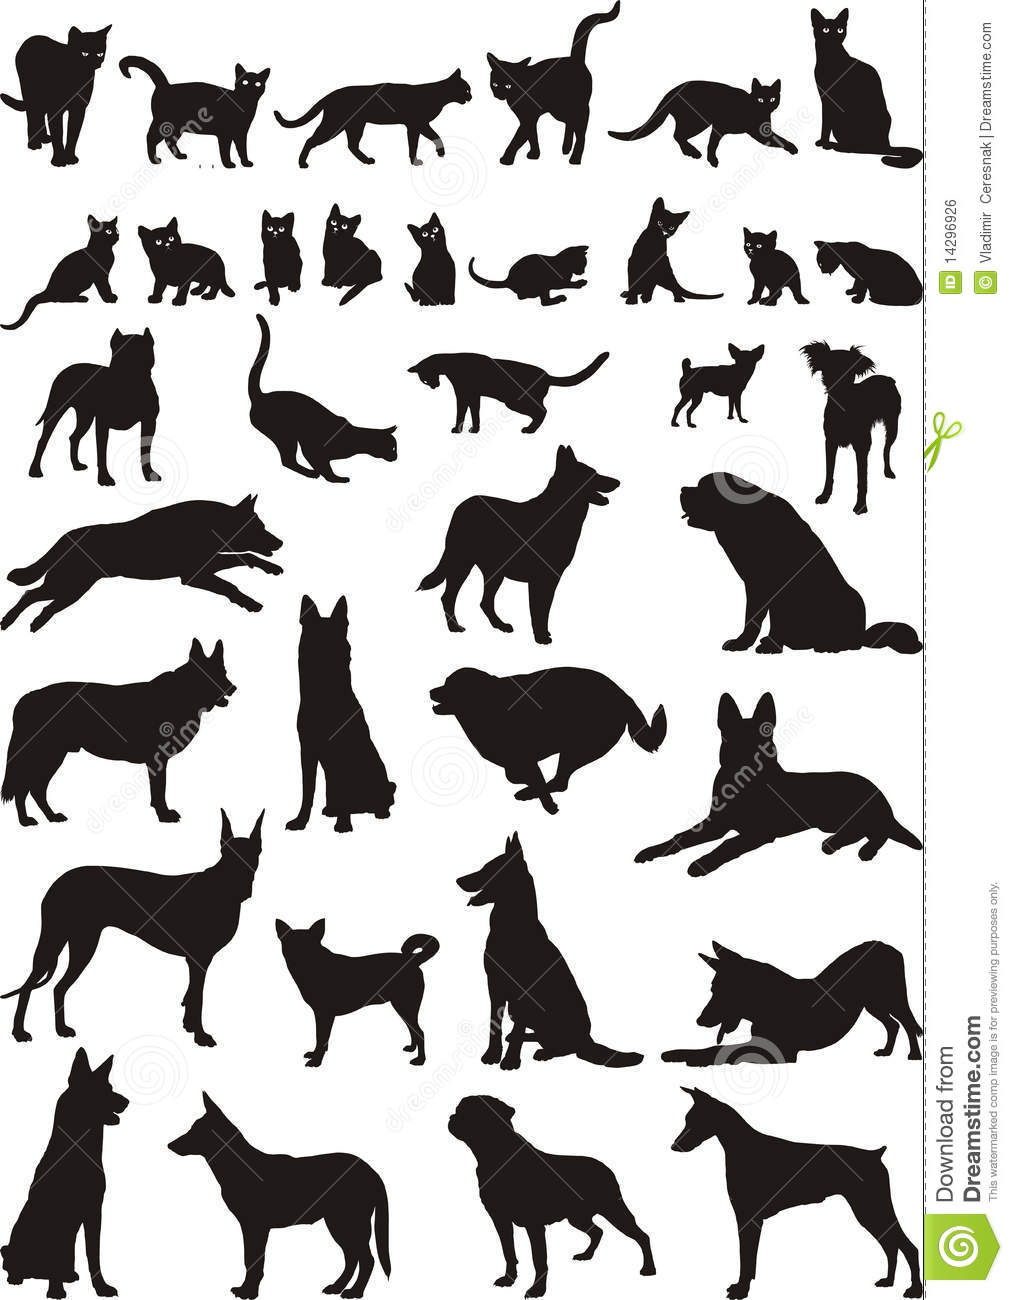 Cats And Dogs Vector Illustrations Stock Vector Illustration Of Mammal Elements 14296926